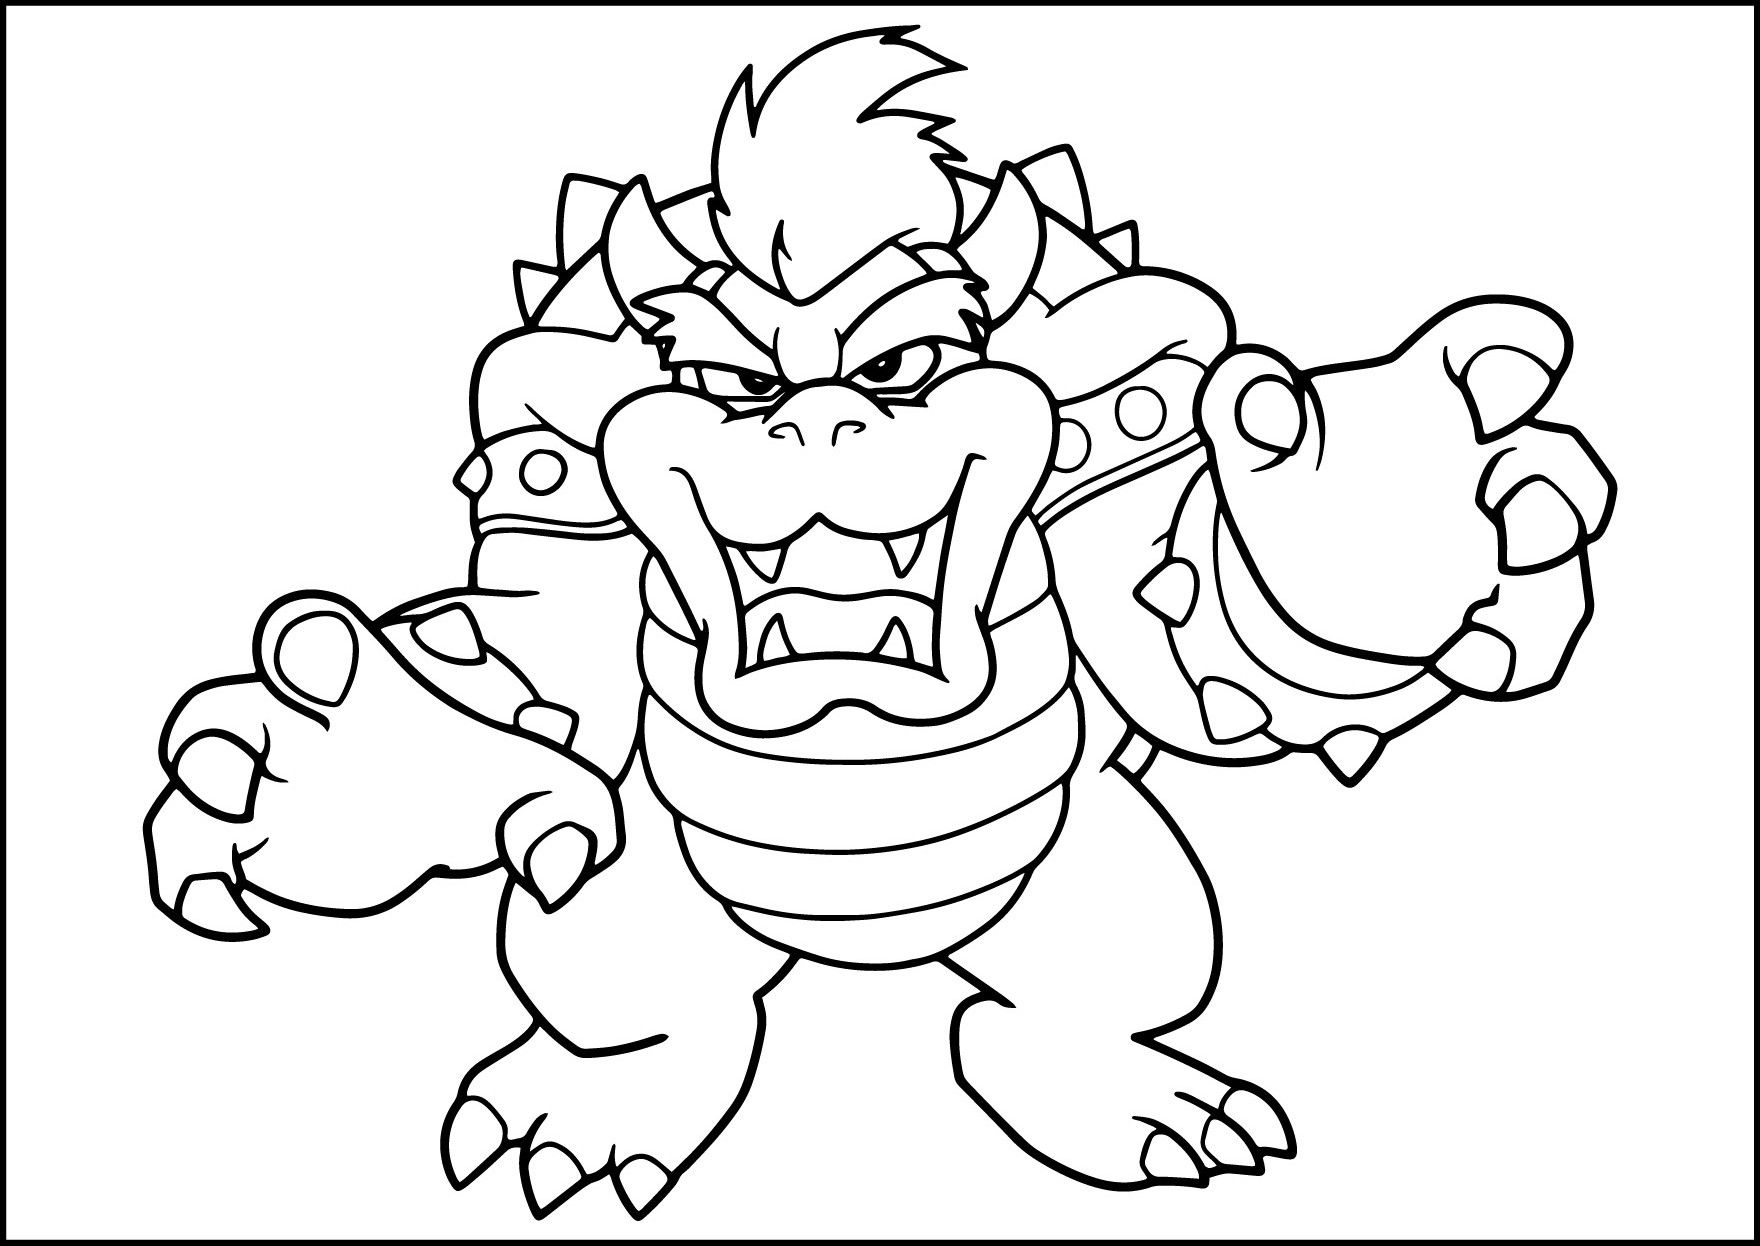 Mario Bros Bowser Coloring Pages By Sharon